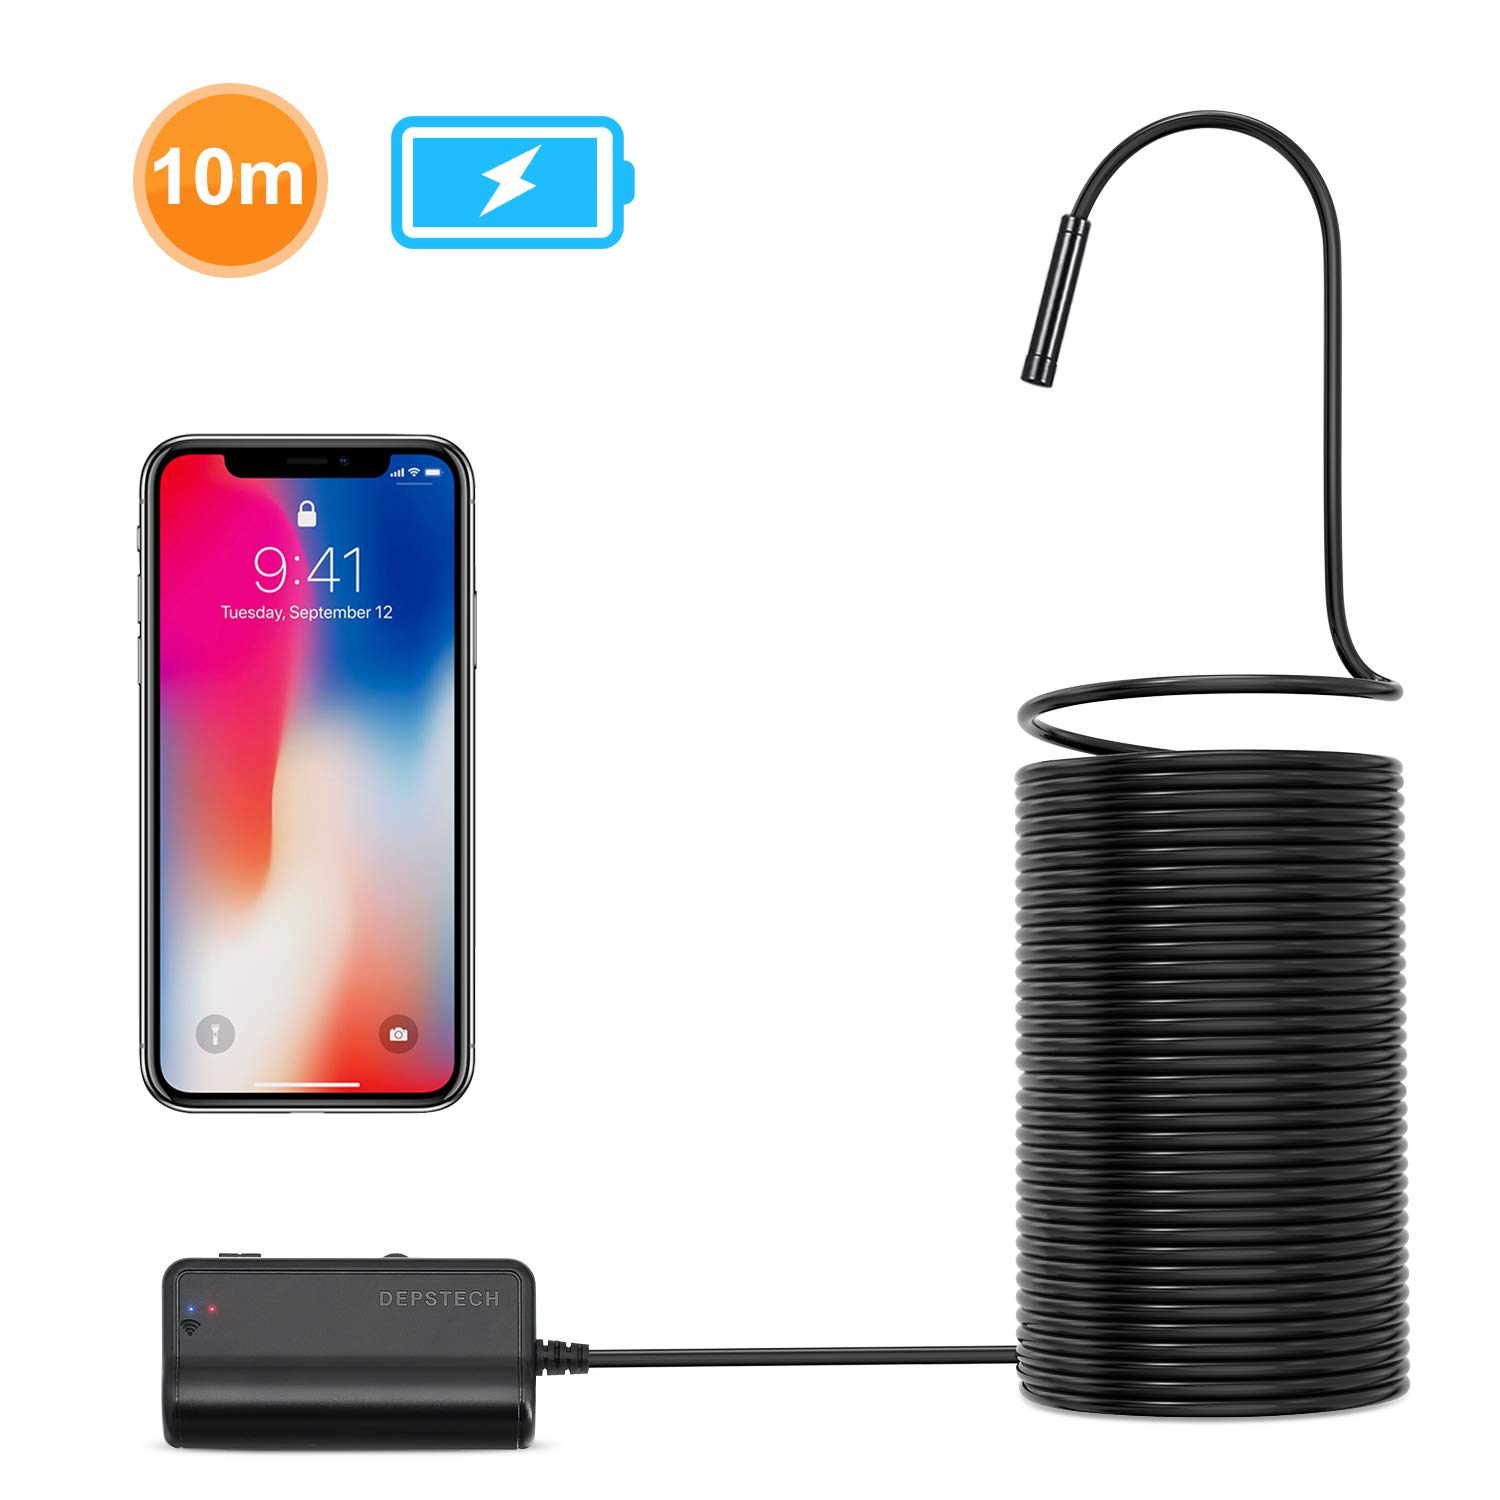 Depstech 1200P Semi-Rigid Wireless Endoscope, 2.0 MP HD WiFi Borescope Inspection Camera,16 inch Focal Distance & 2200mAh Battery Snake Camera for Android & iOS Smartphone Tablet - Black 33FT by DEPSTECH (Image #1)